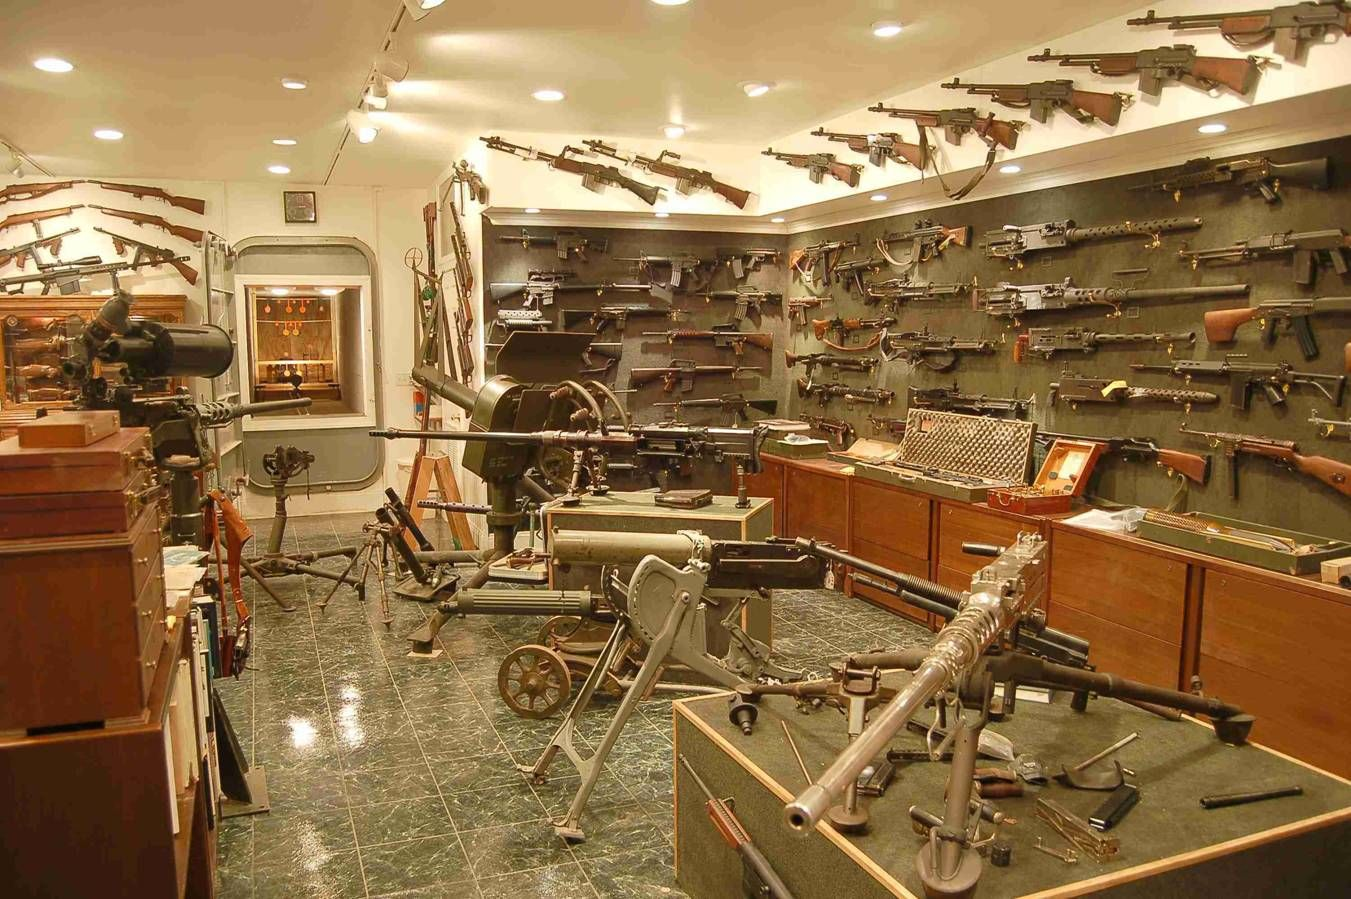 Best Small Man Cave : Man cave or weapon arsenal a little of both i would think